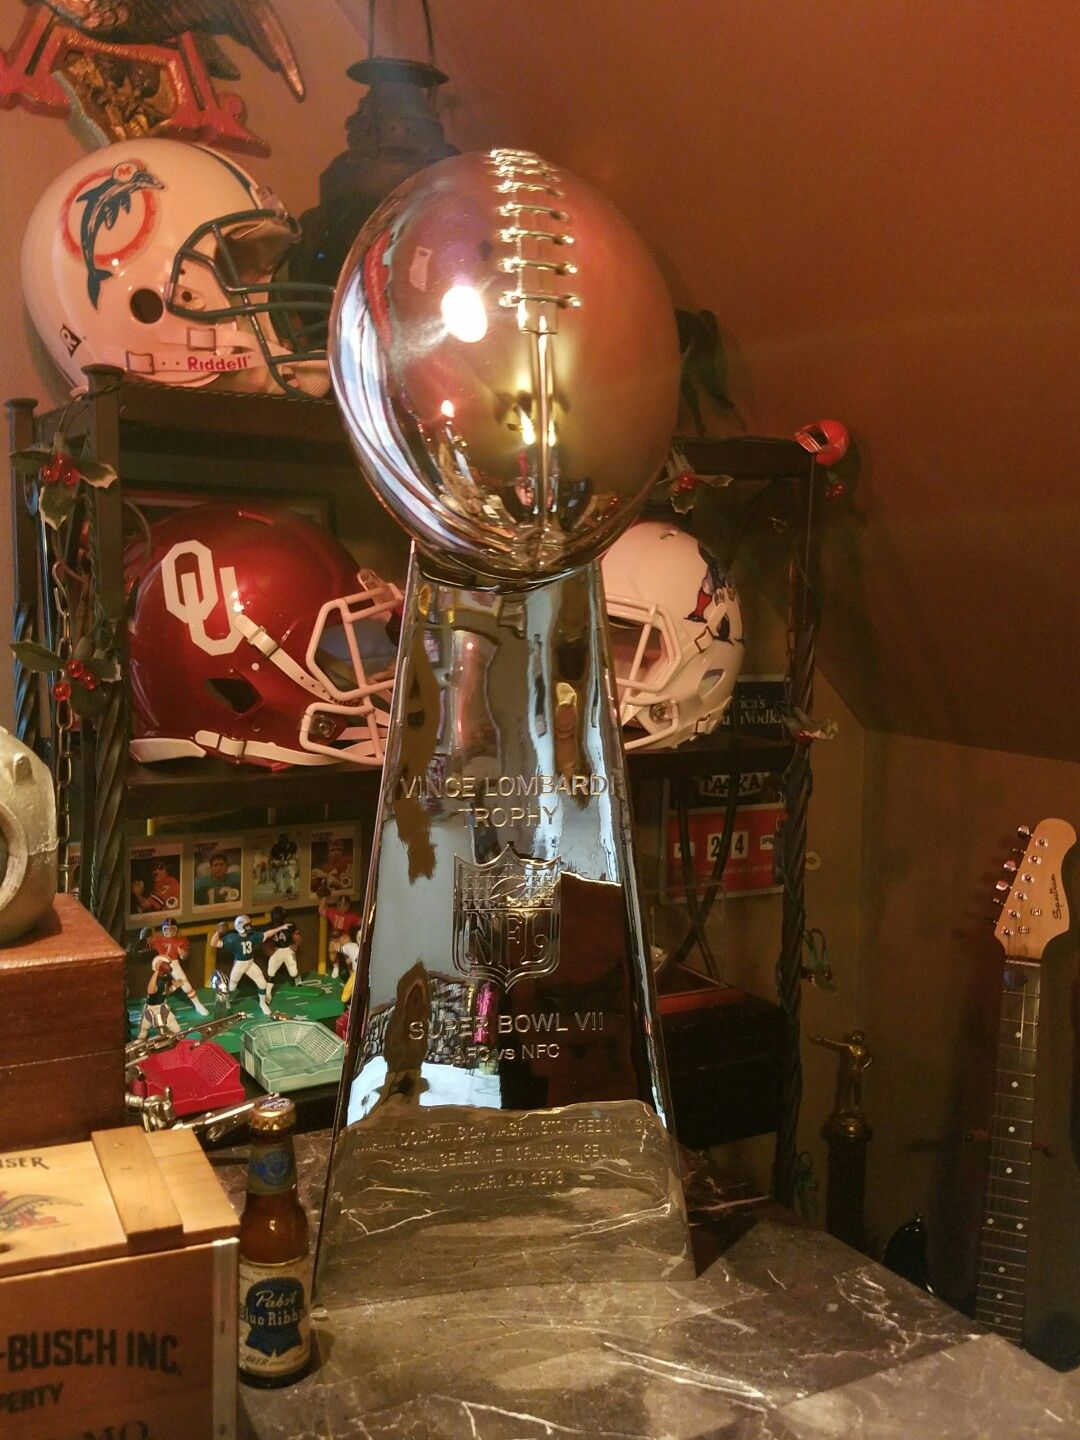 My Replica Miami Dolphins Super Bowl Trophy from the 1972